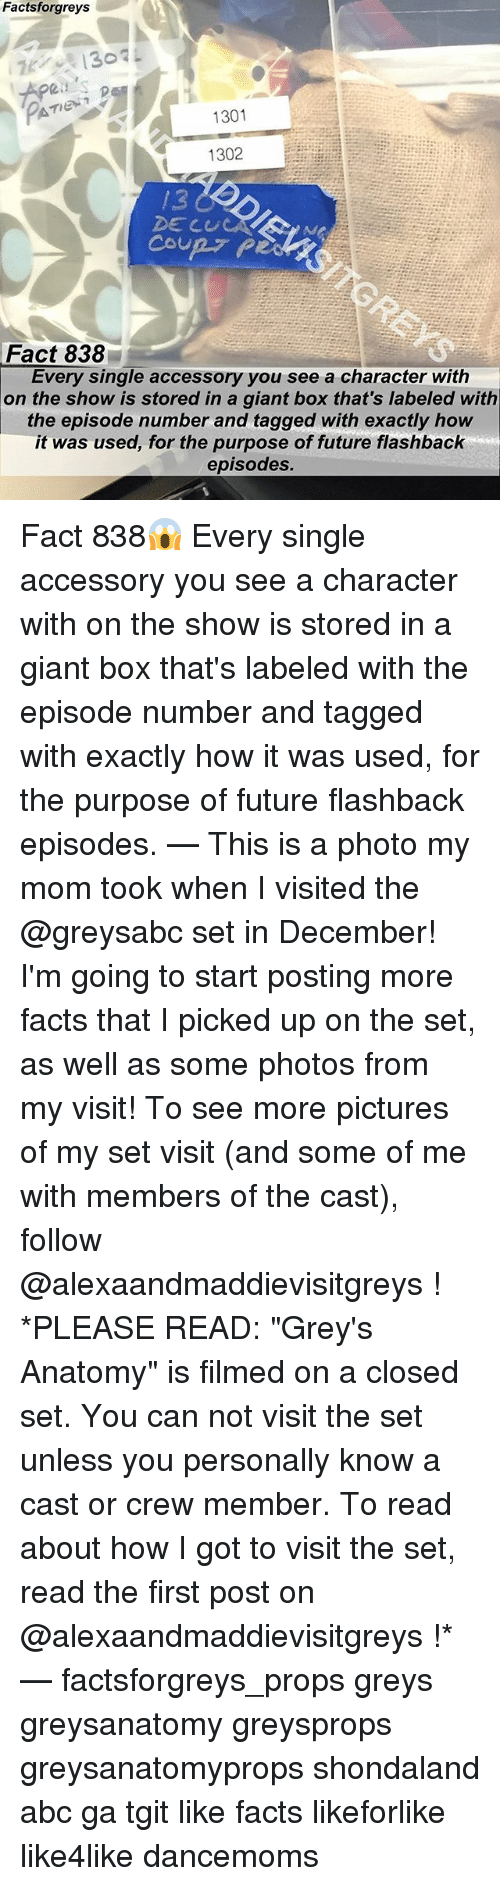 """Cul: Factsforgreys  Apeis  1301  1302  /3  DE CUL  Fact 838  Every single accessory you see a character with  on the show is stored in a giant box that's labeled with  the episode number and tagged with exactly how  it was used, for the purpose of future flashback  episodes. Fact 838😱 Every single accessory you see a character with on the show is stored in a giant box that's labeled with the episode number and tagged with exactly how it was used, for the purpose of future flashback episodes. — This is a photo my mom took when I visited the @greysabc set in December! I'm going to start posting more facts that I picked up on the set, as well as some photos from my visit! To see more pictures of my set visit (and some of me with members of the cast), follow @alexaandmaddievisitgreys ! *PLEASE READ: """"Grey's Anatomy"""" is filmed on a closed set. You can not visit the set unless you personally know a cast or crew member. To read about how I got to visit the set, read the first post on @alexaandmaddievisitgreys !* — factsforgreys_props greys greysanatomy greysprops greysanatomyprops shondaland abc ga tgit like facts likeforlike like4like dancemoms"""